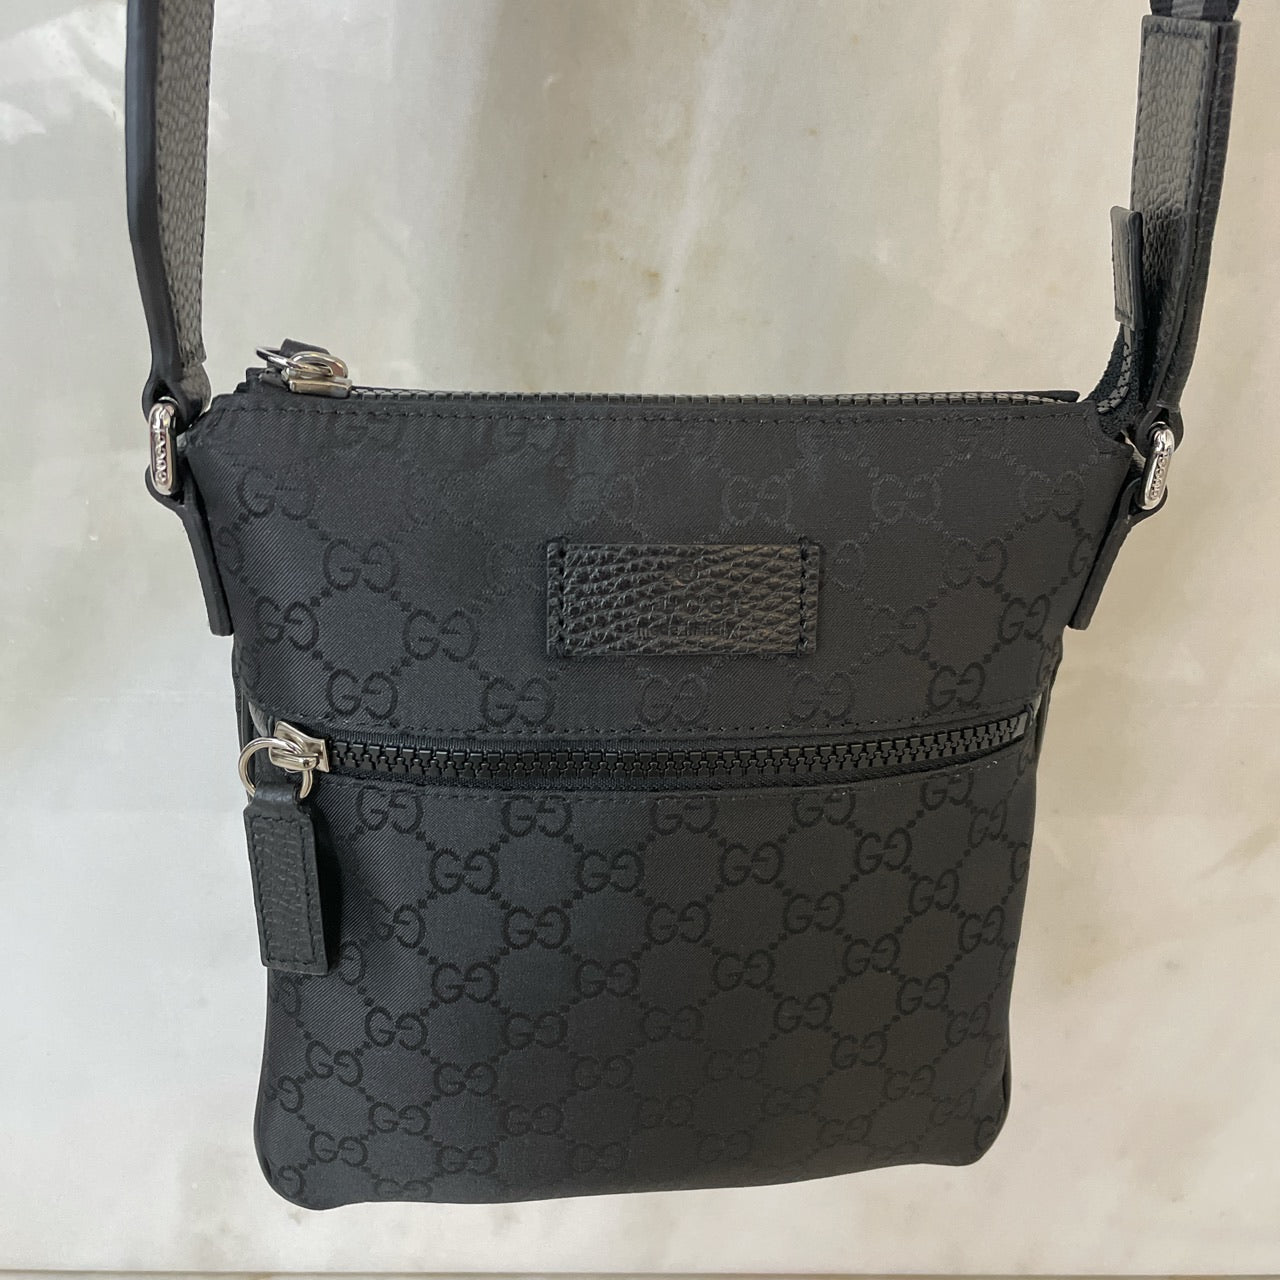 GUCCI GG SUPREME WEB MONOGRAM MESSENGER BAG - BLACK